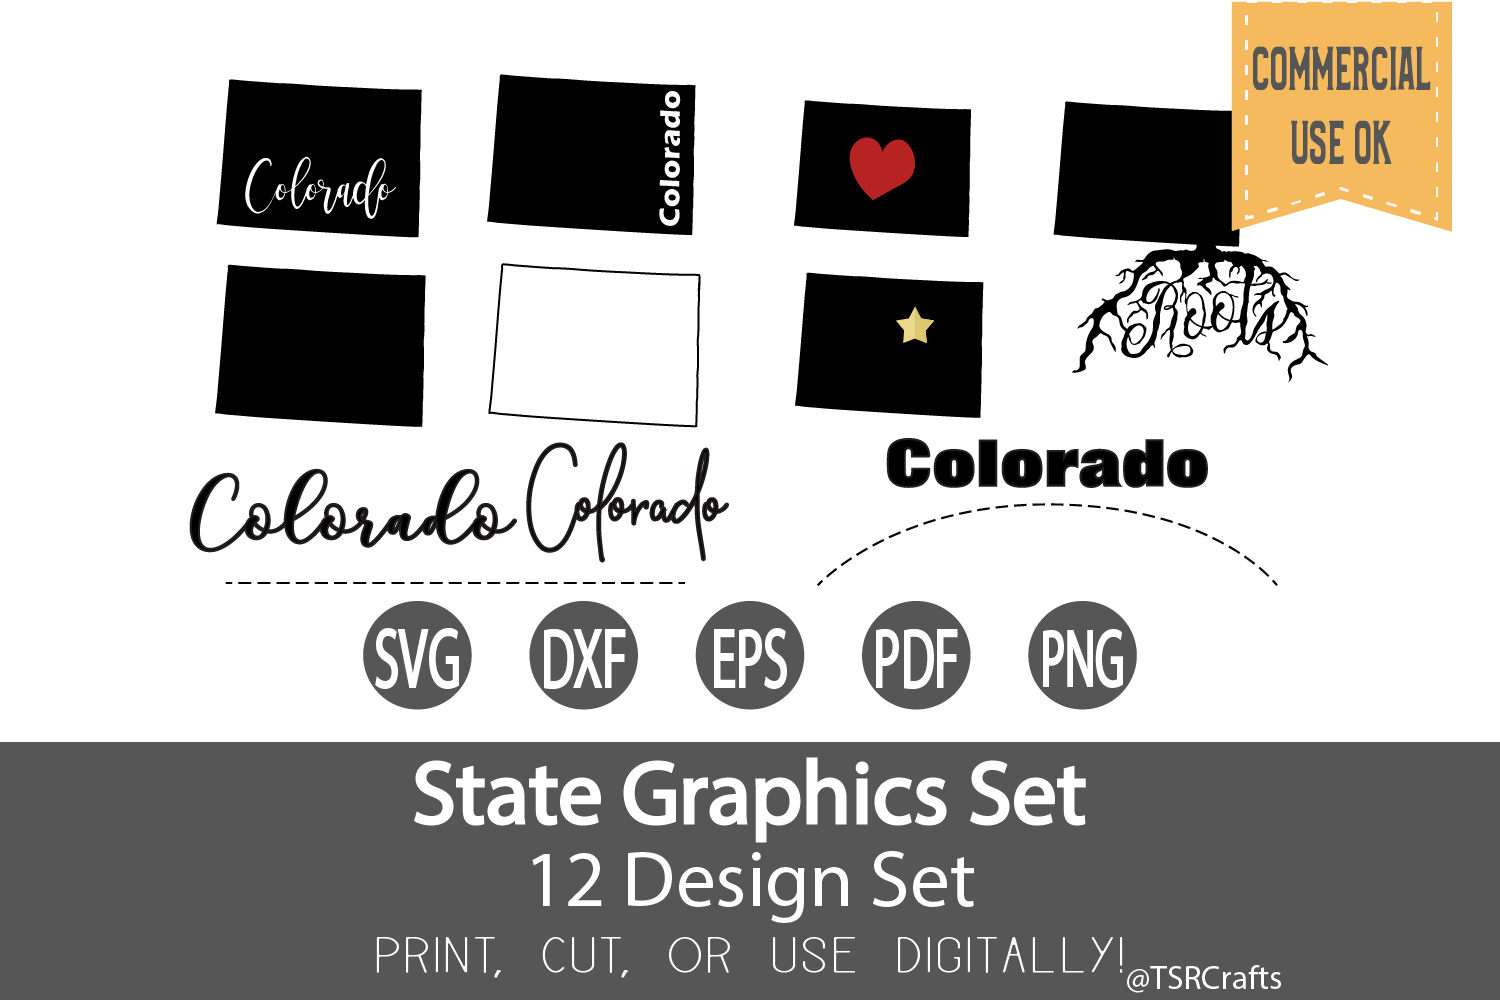 Colorado State Graphics Set - Clip Art and Digital Cut fil example image 1